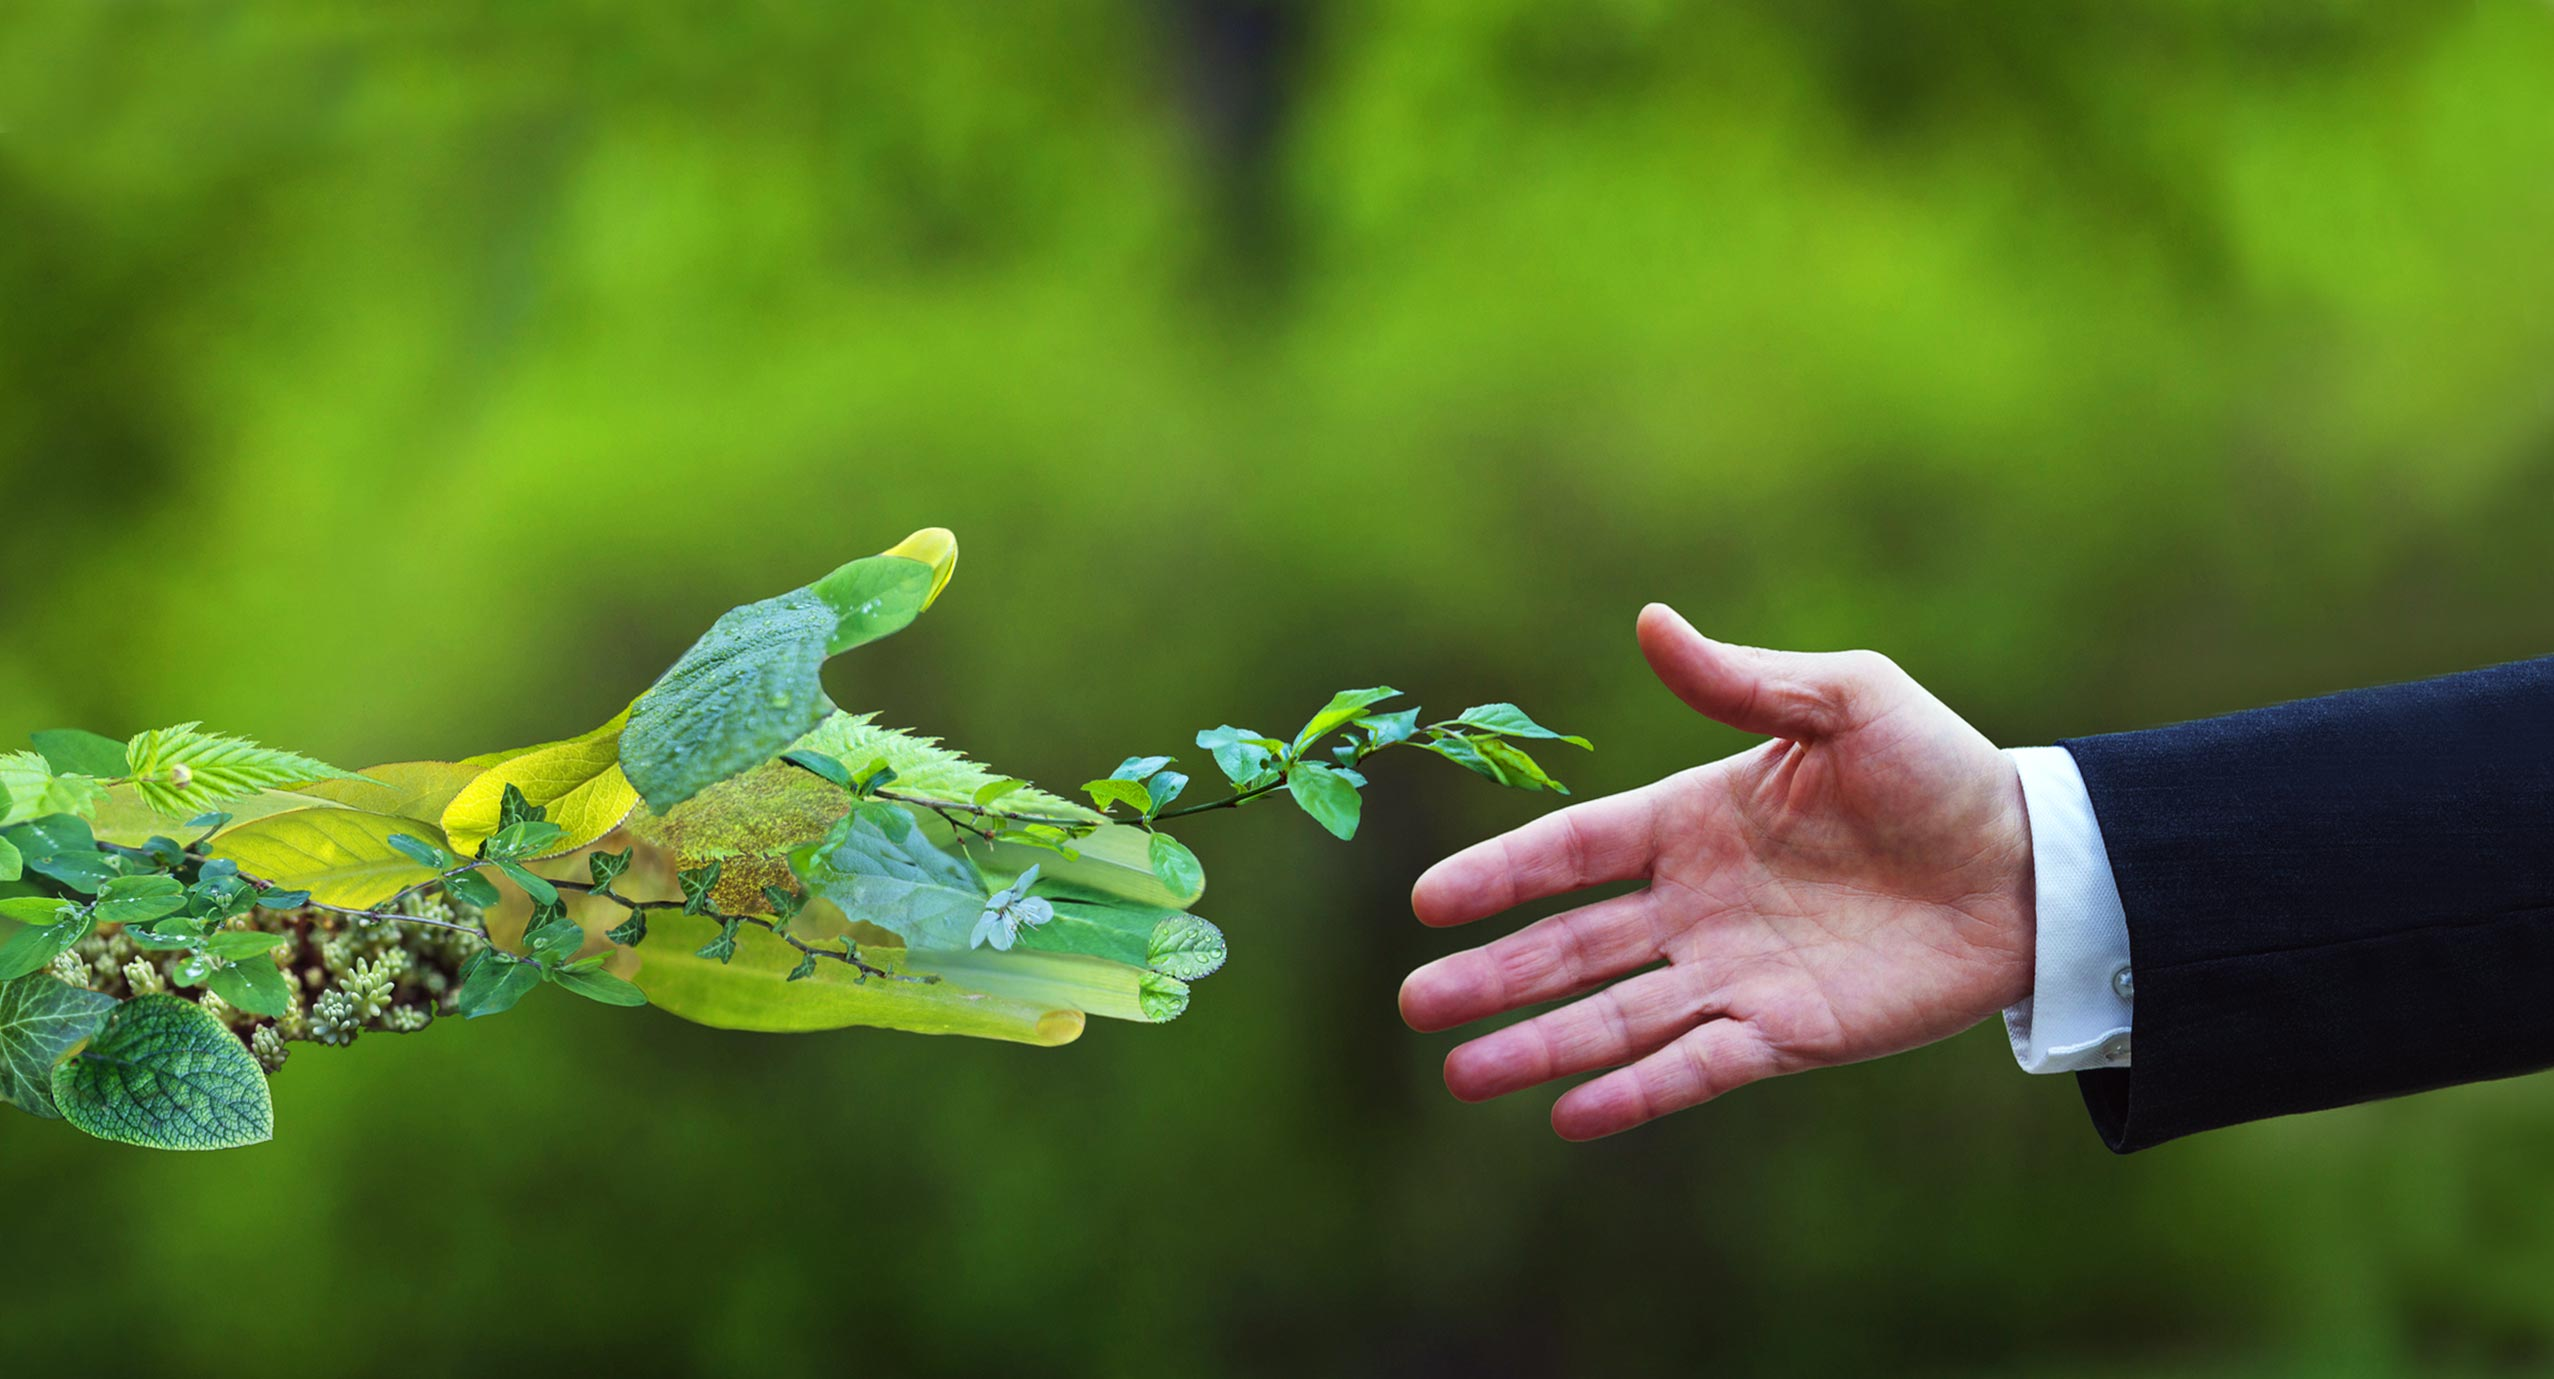 CRIBE - Biomass Solutions for Our Future